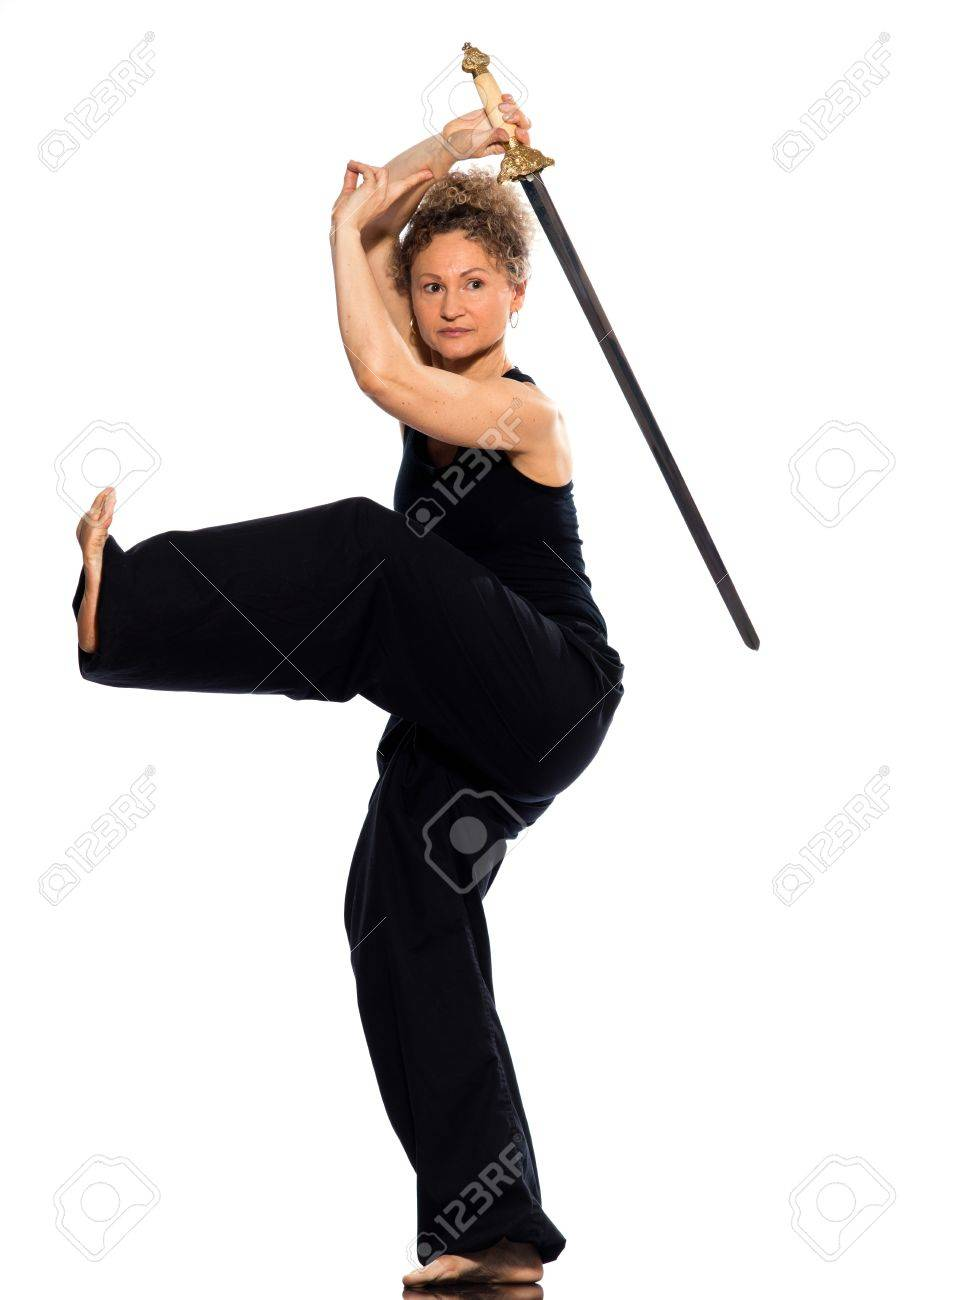 mature woman praticing tai chi chuan with sword in studio on isolated white background Stock Photo - 11766399